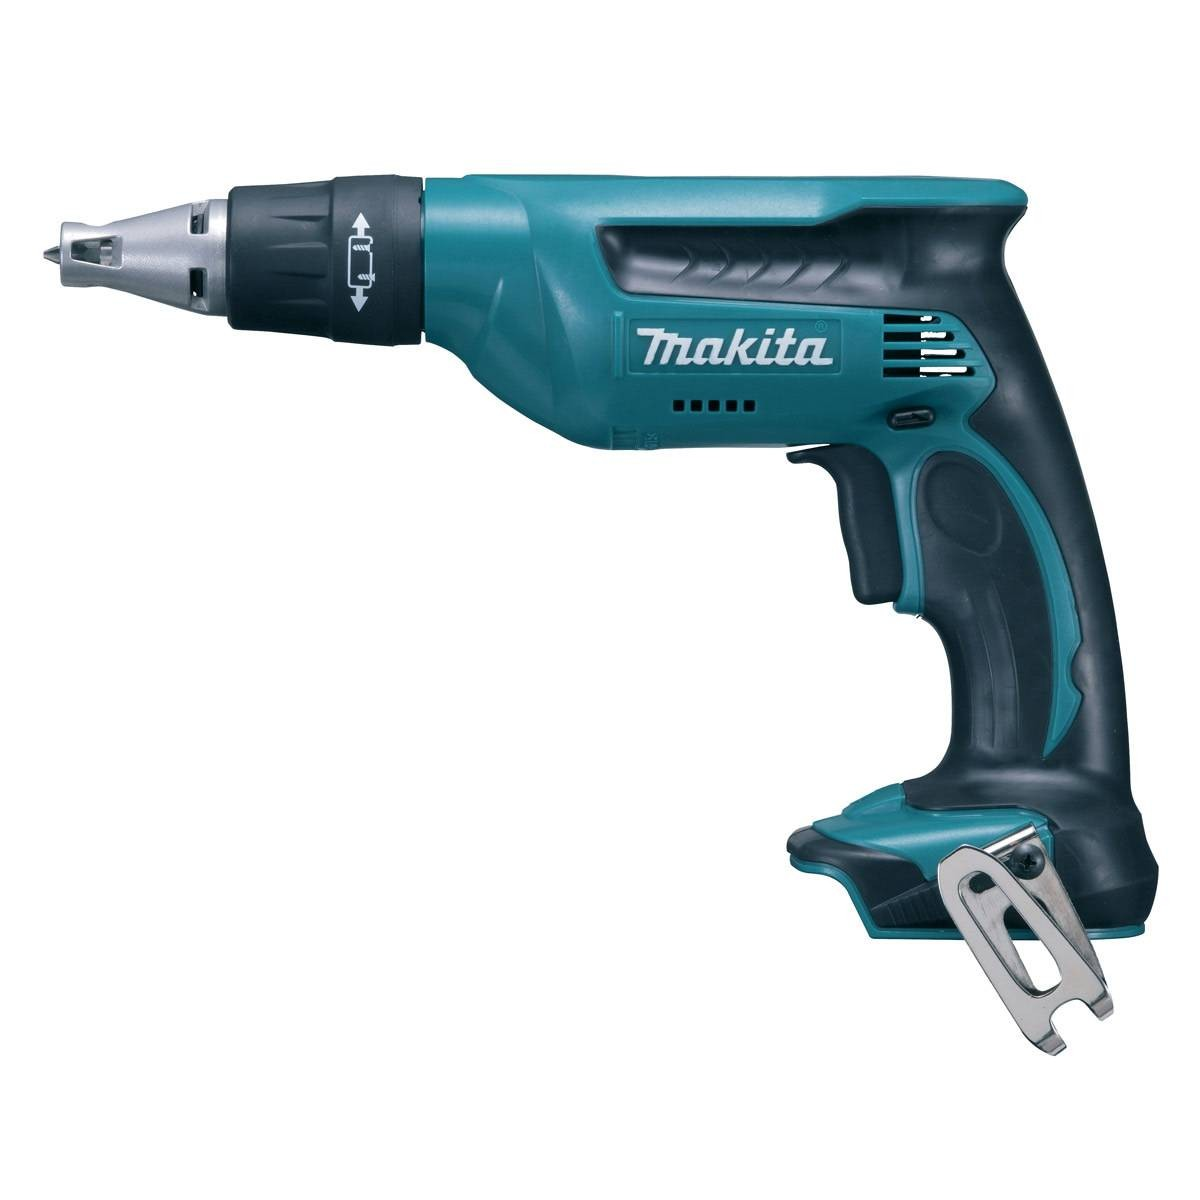 Makita DFS451Z LXT 18v Cordless Drywall Screwdriver Body Only